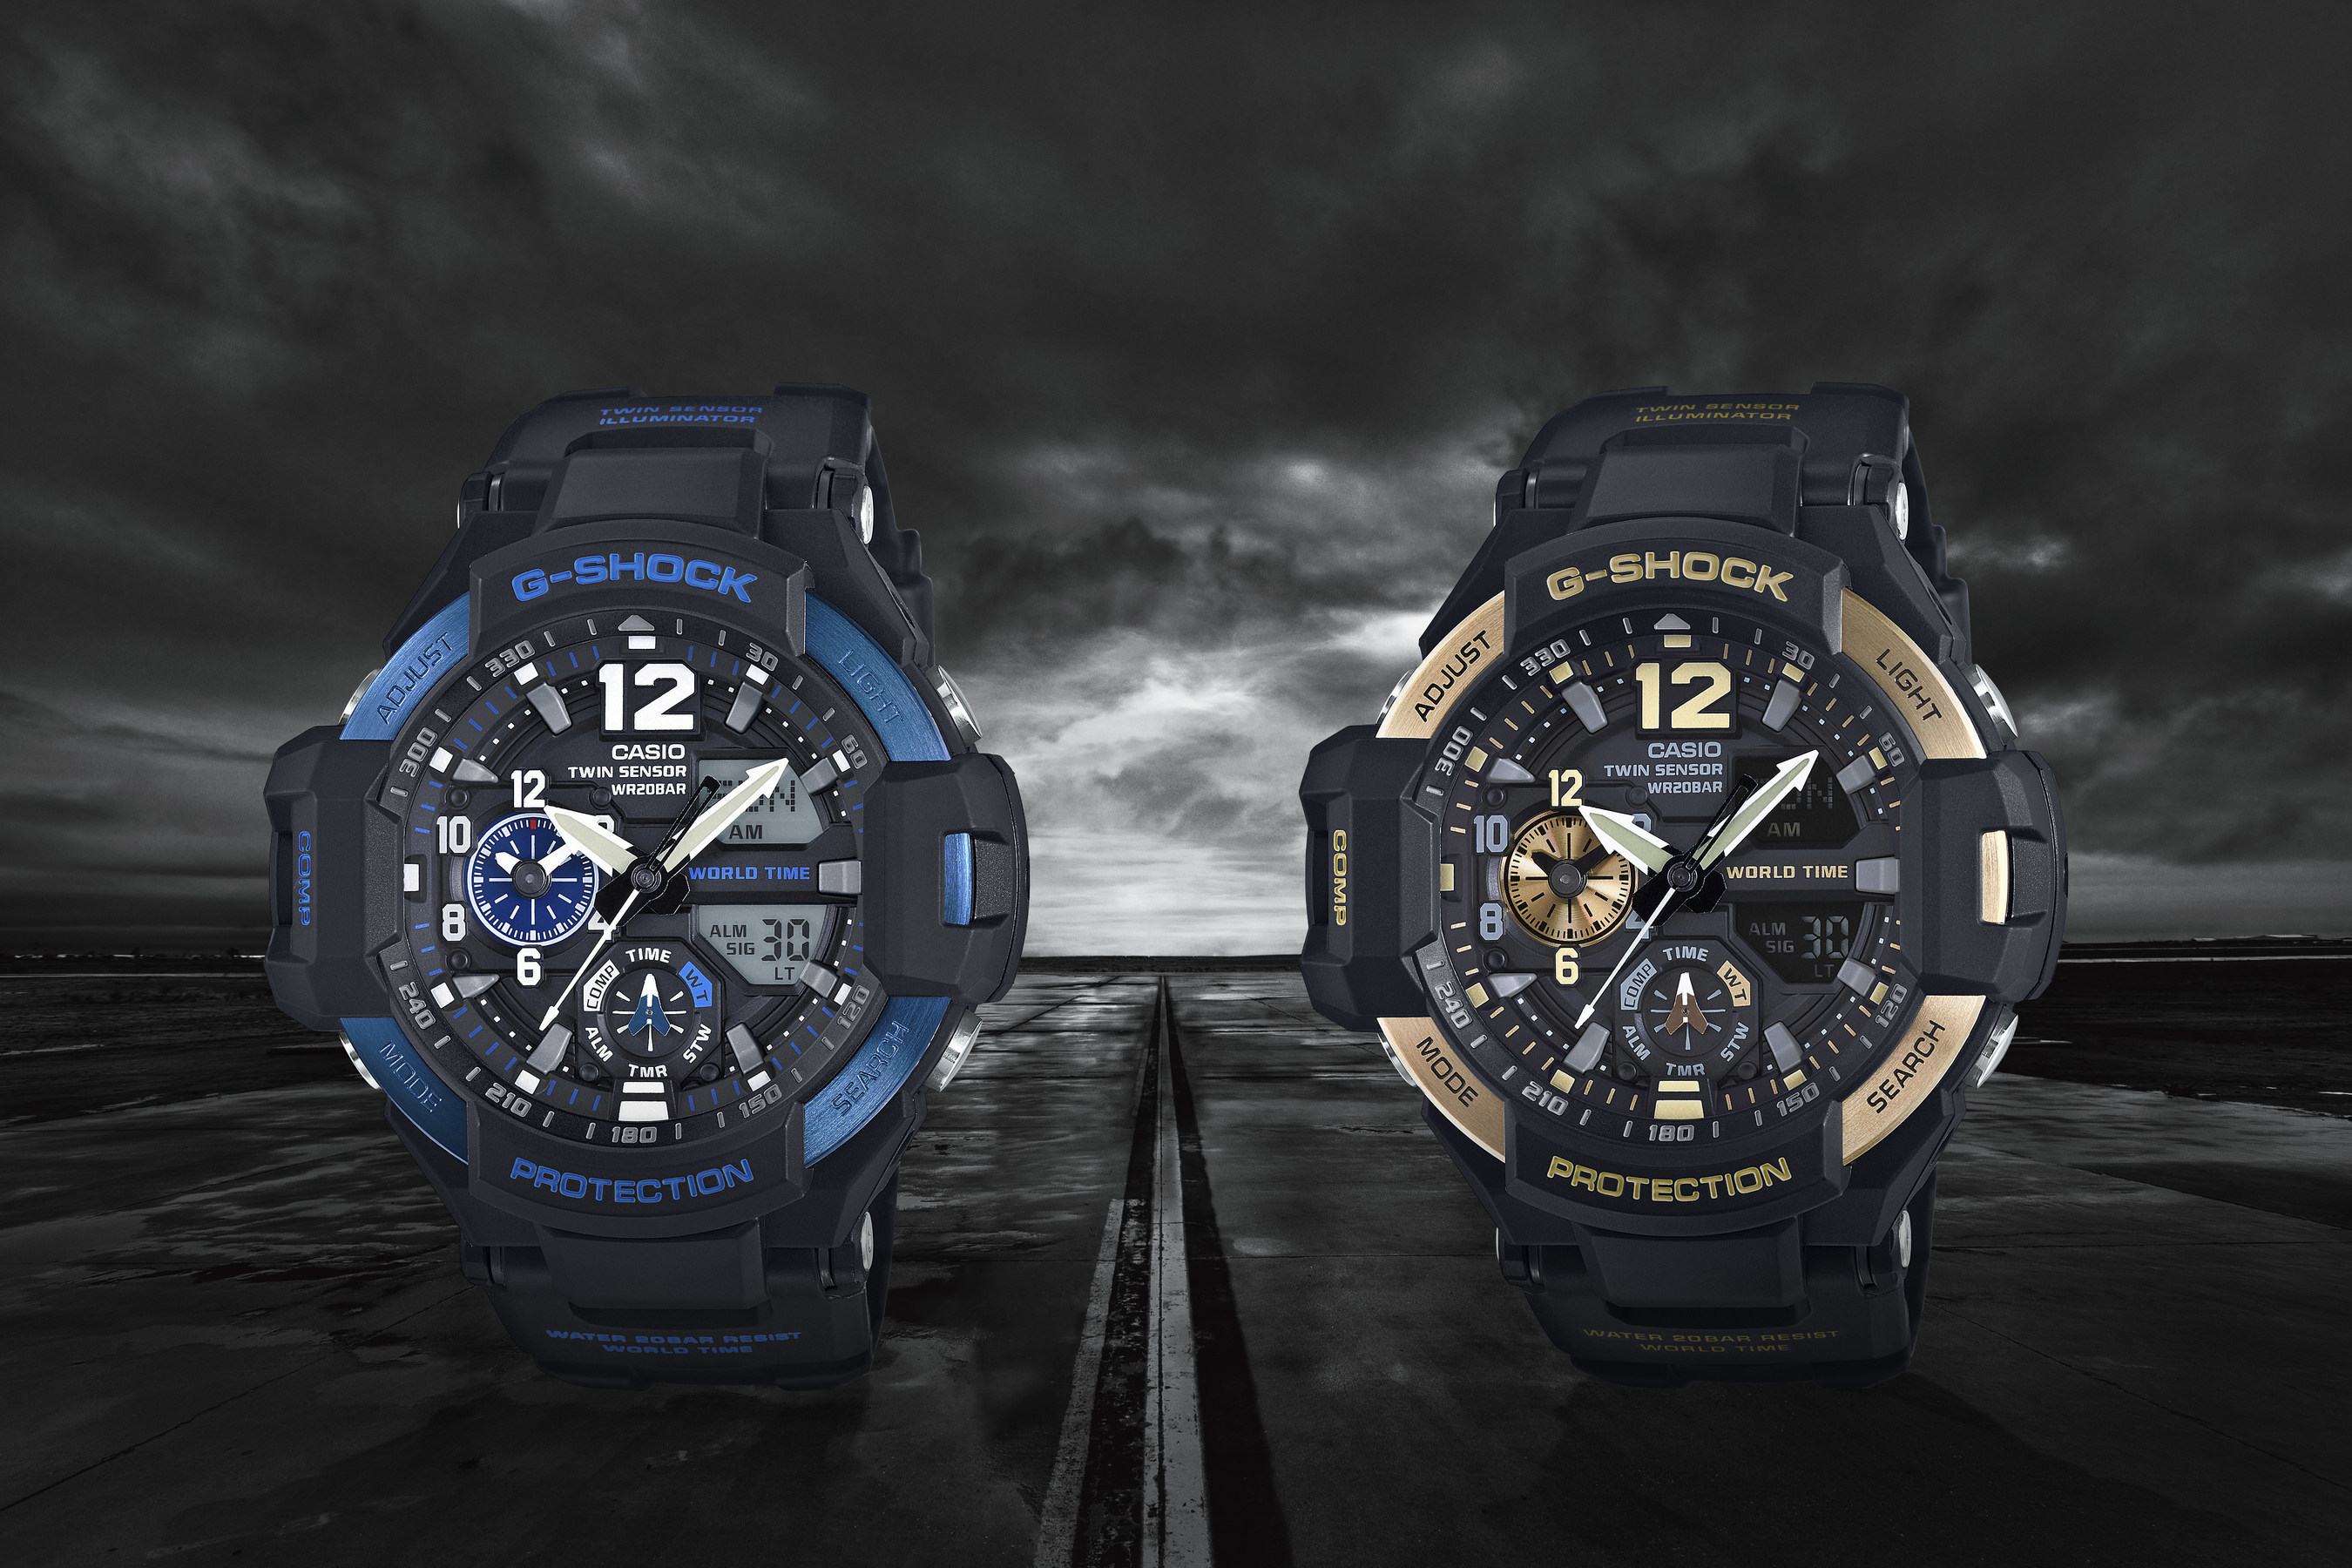 Casio G-Shock Releases New Colors To The GRAVITYMASTER For Spring 2016